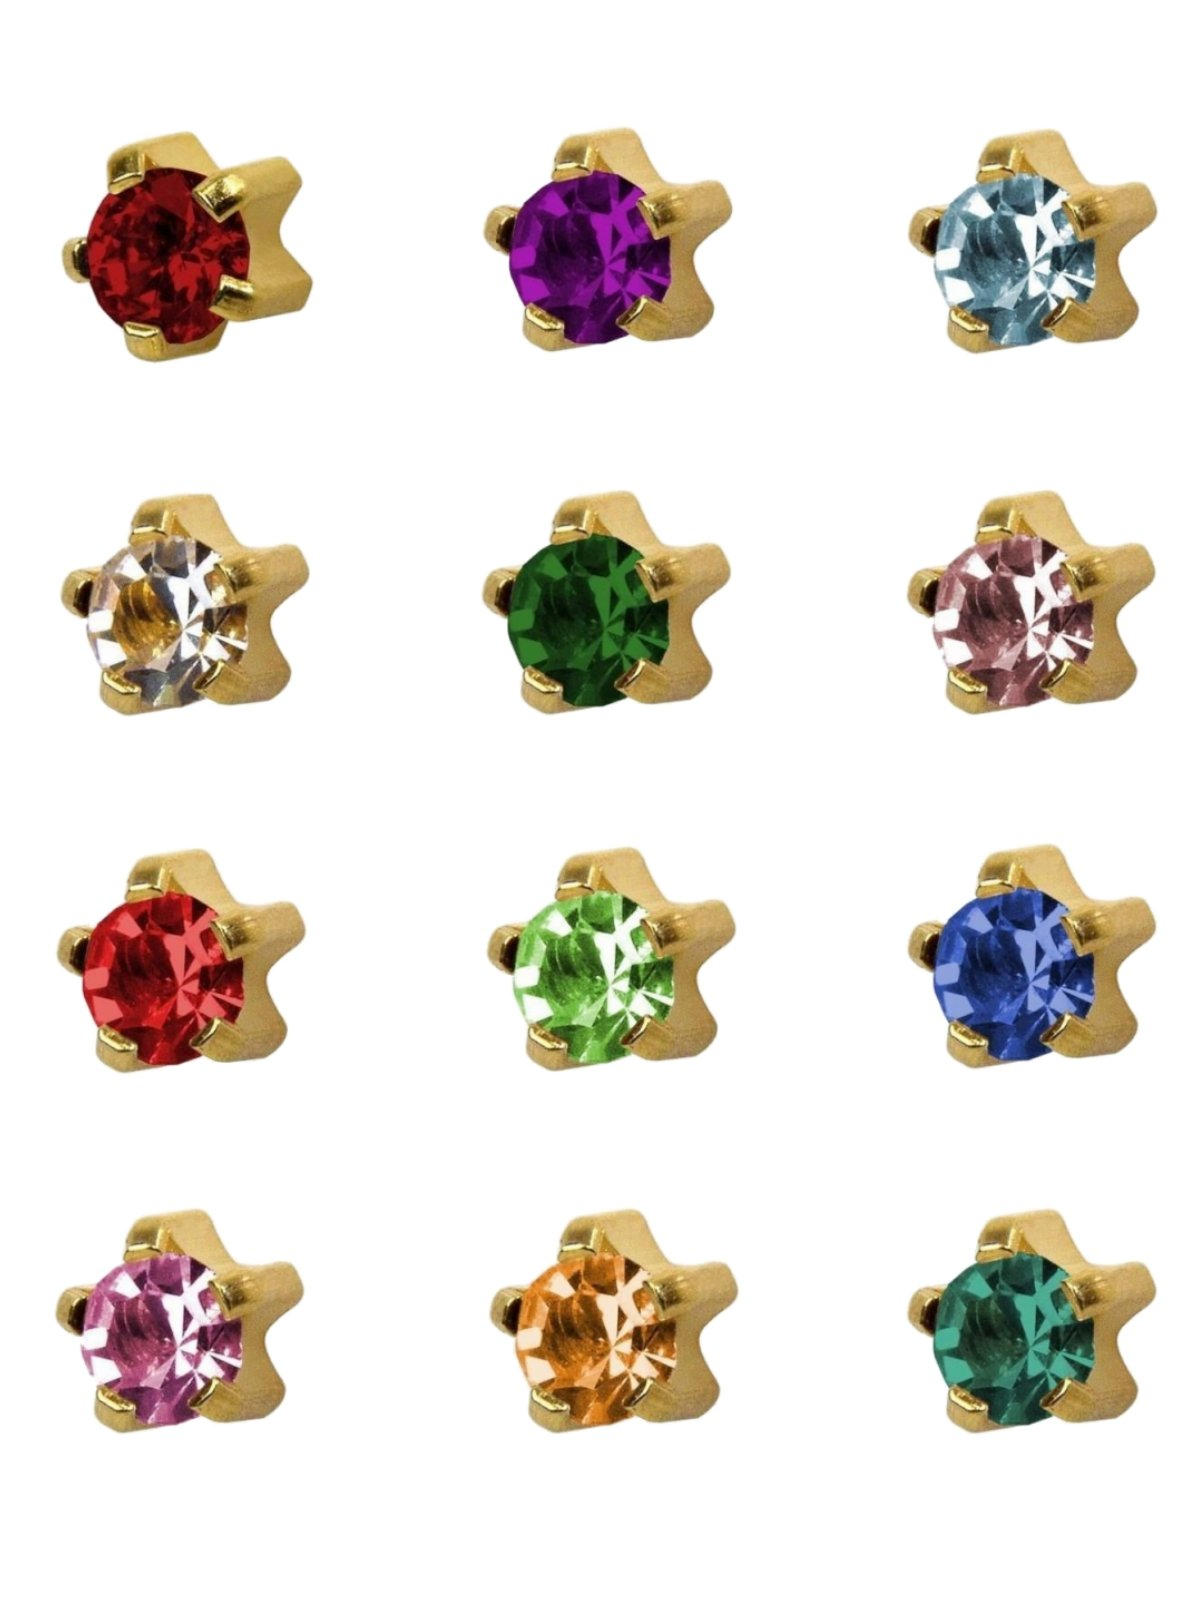 12 Pairs of Studex Ear Piercing Birthstones Gold Plated Stud Earrings Large 5mm Claw Setting by Studex (Image #1)